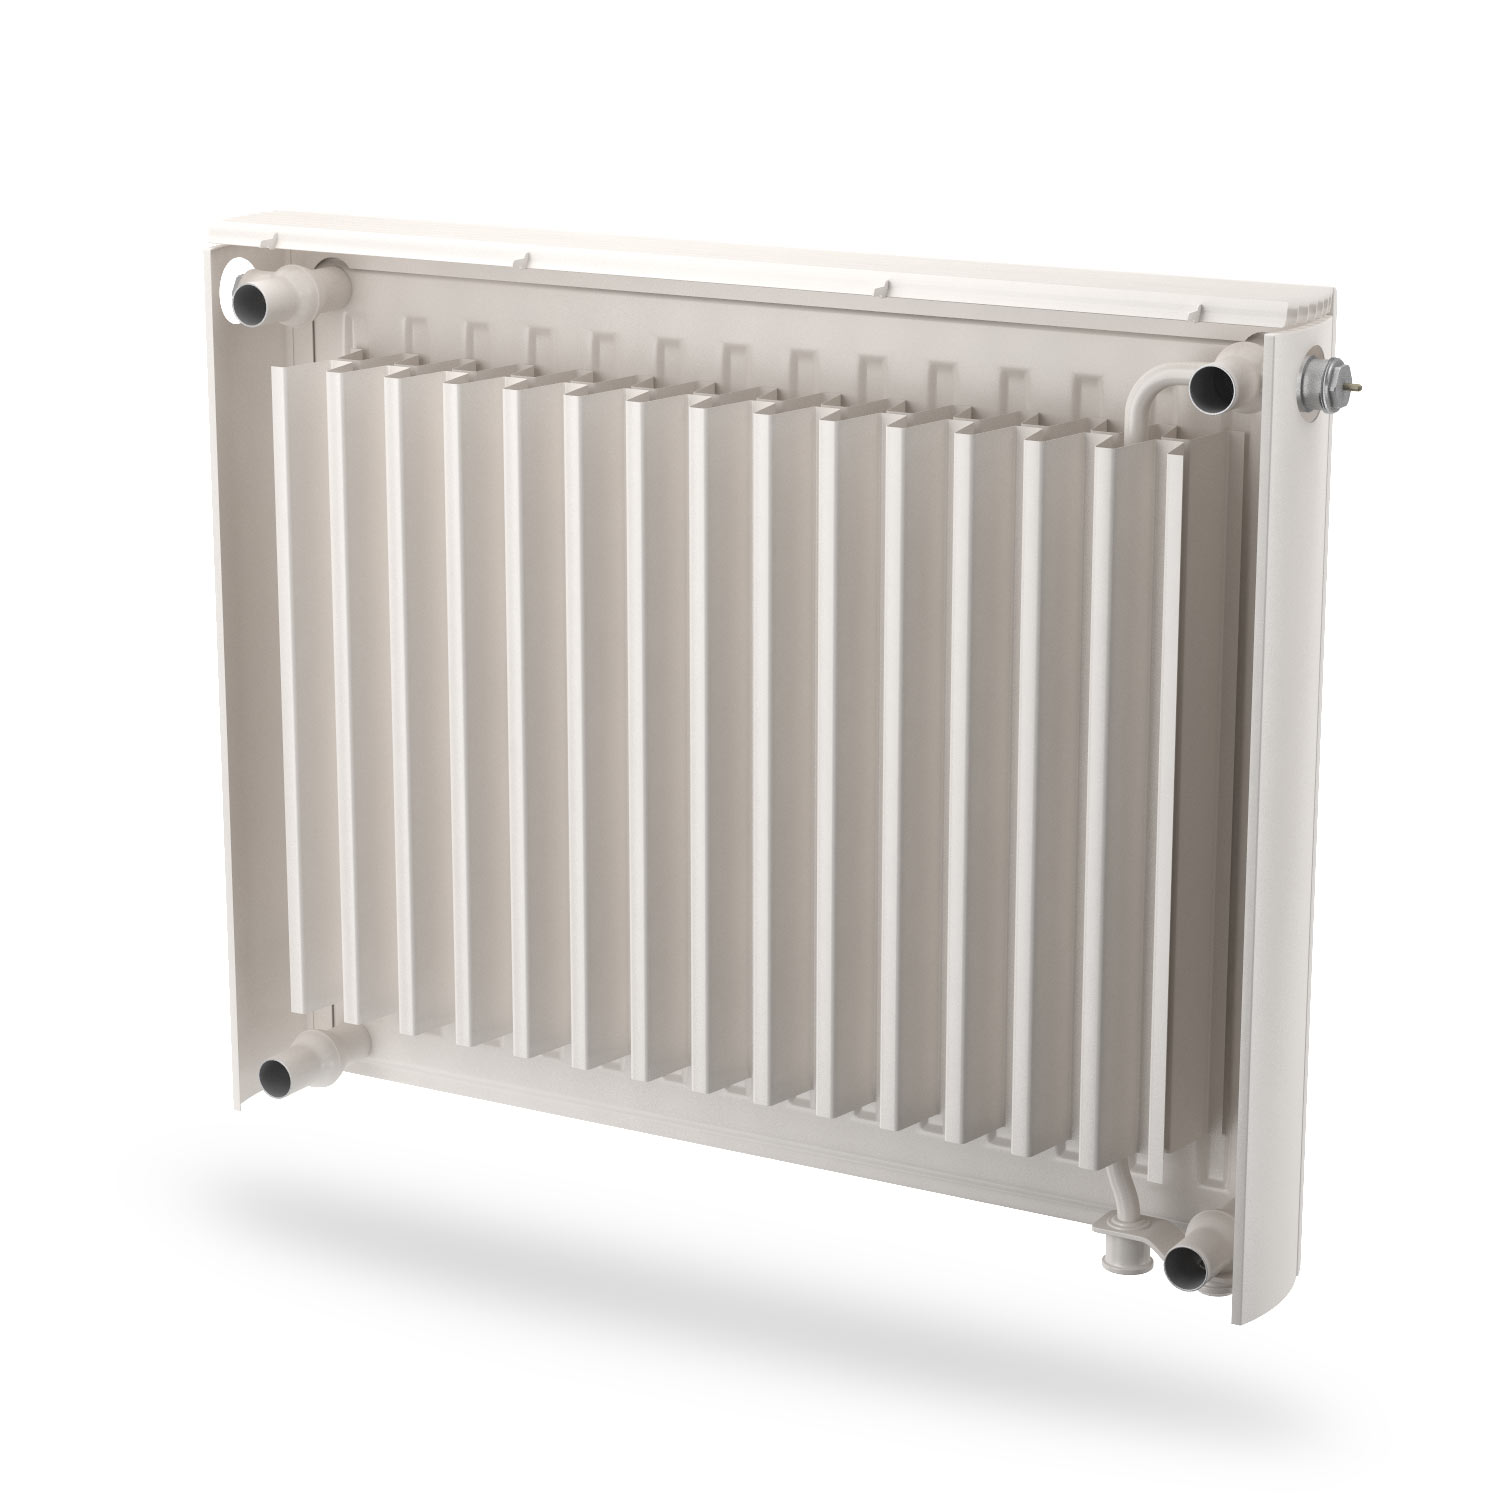 Faro h purmo for Household radiator design